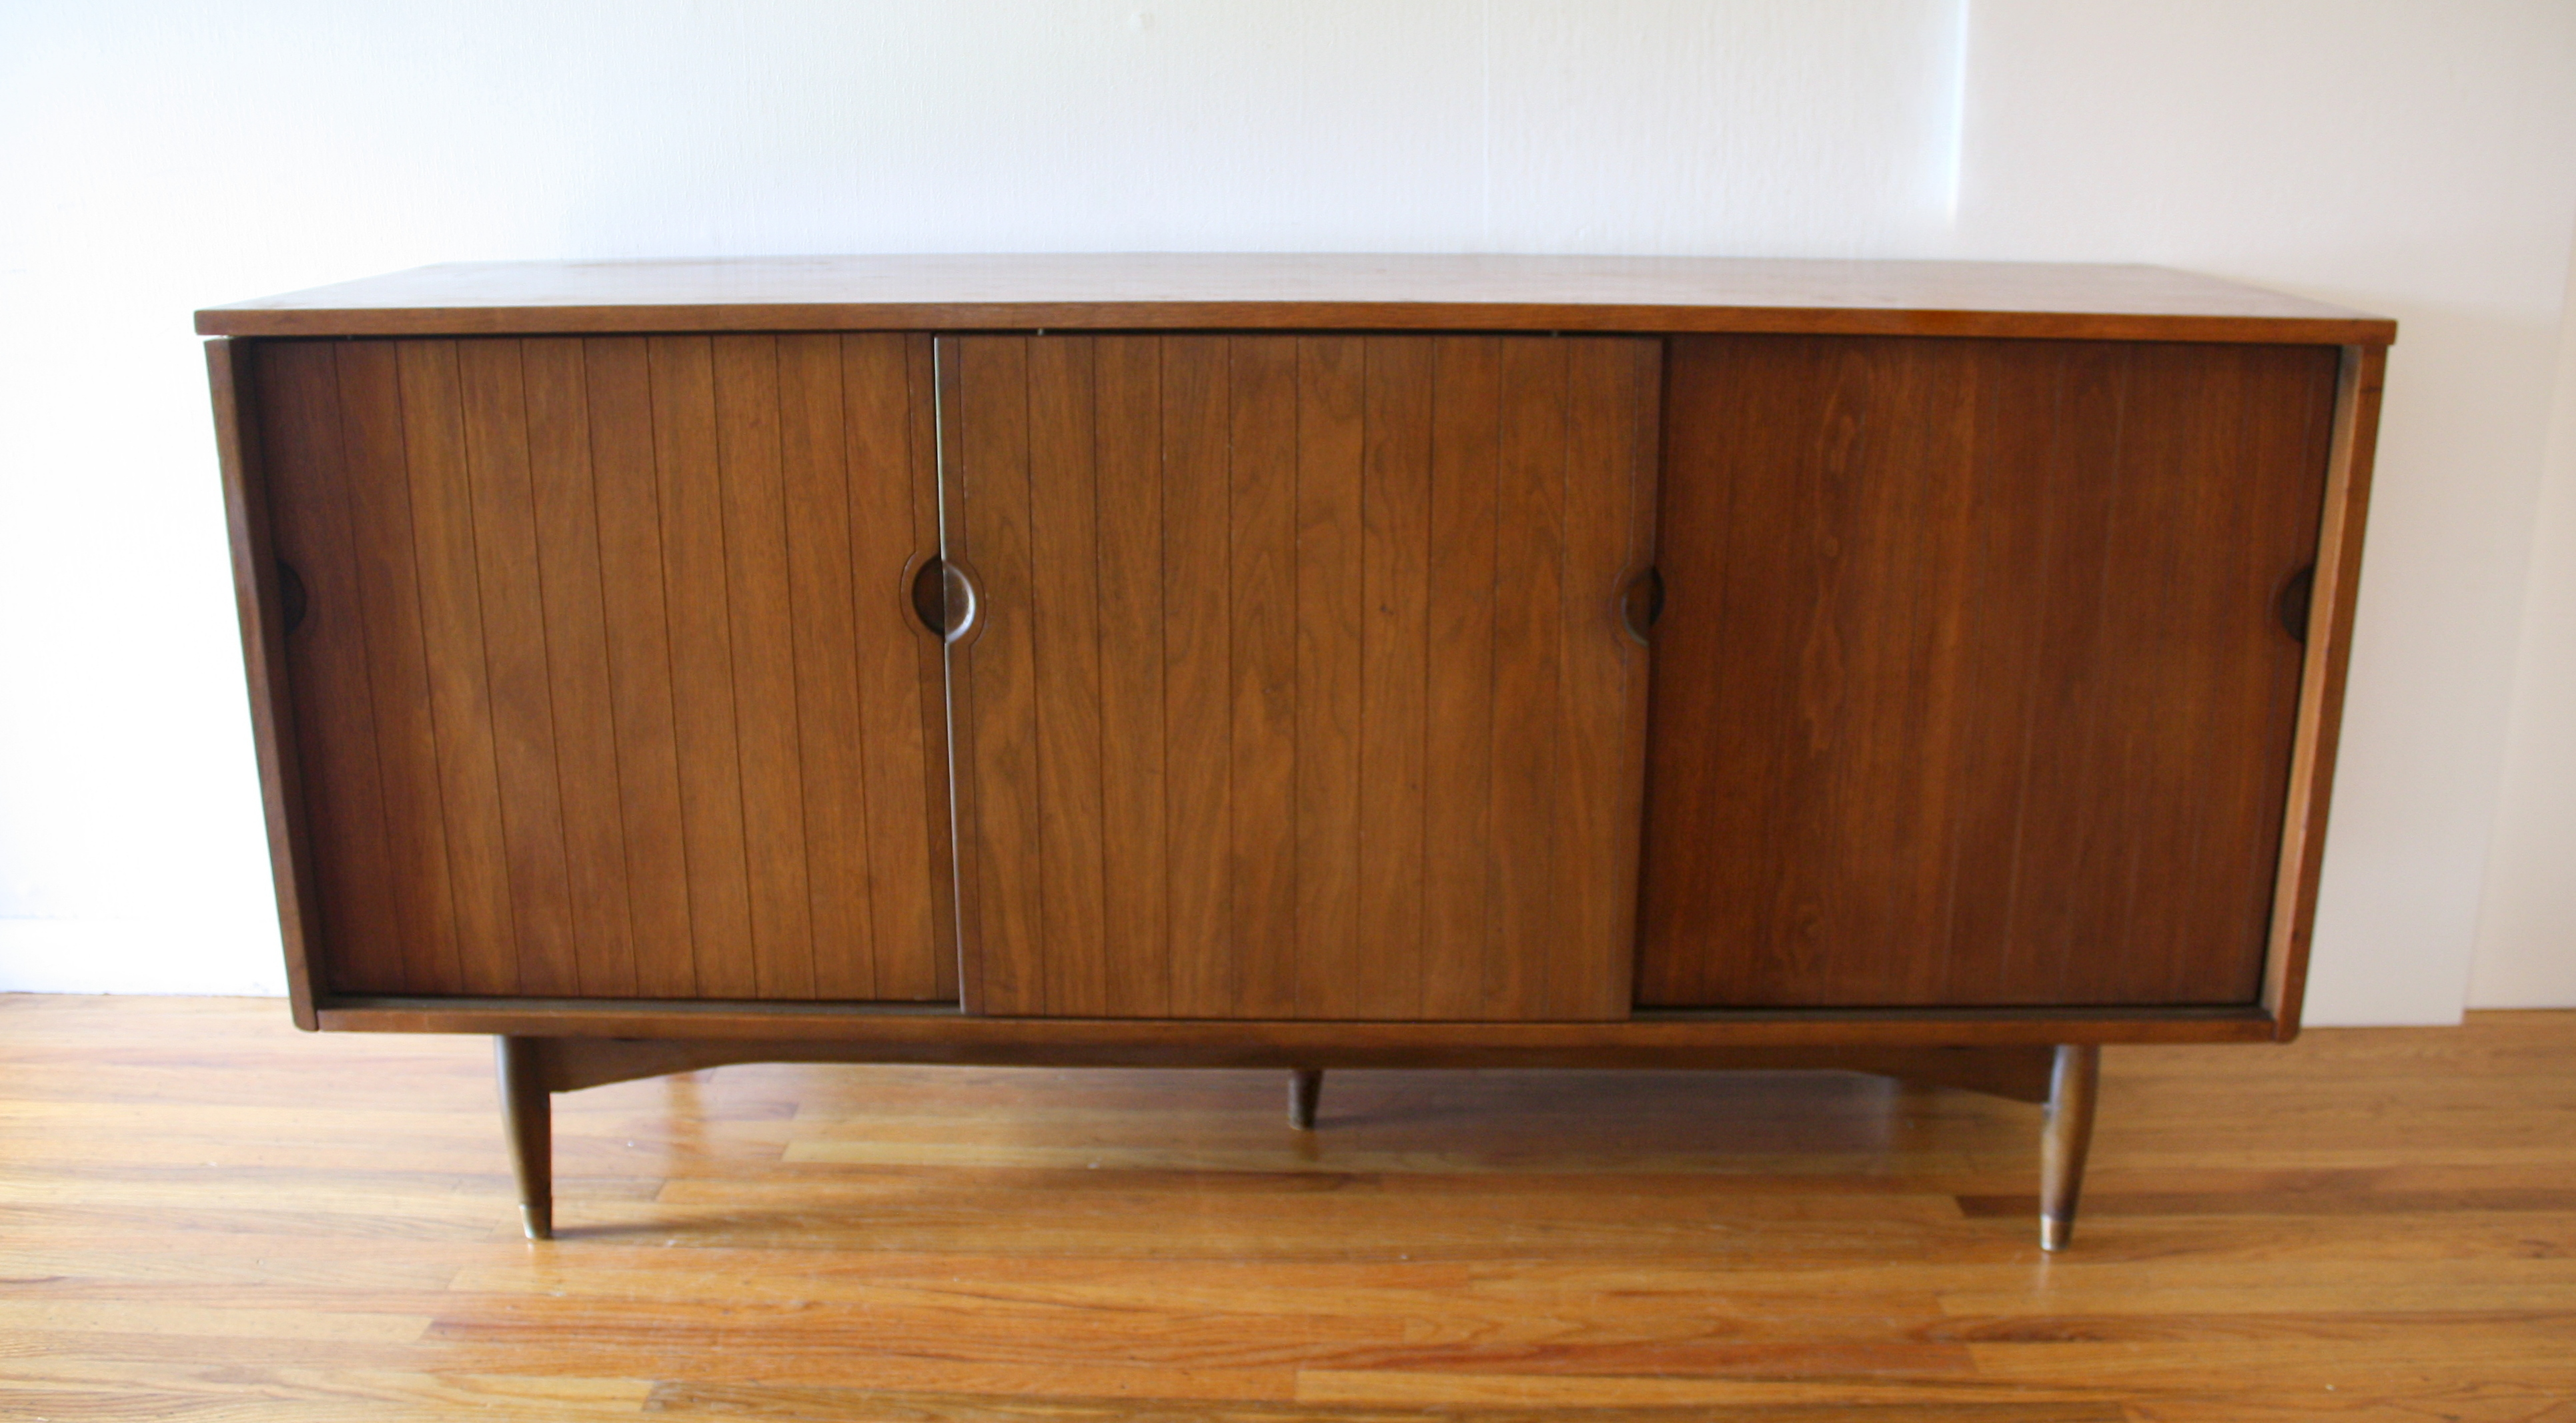 mcm-credenza-with-sliding-door-cabinets-4